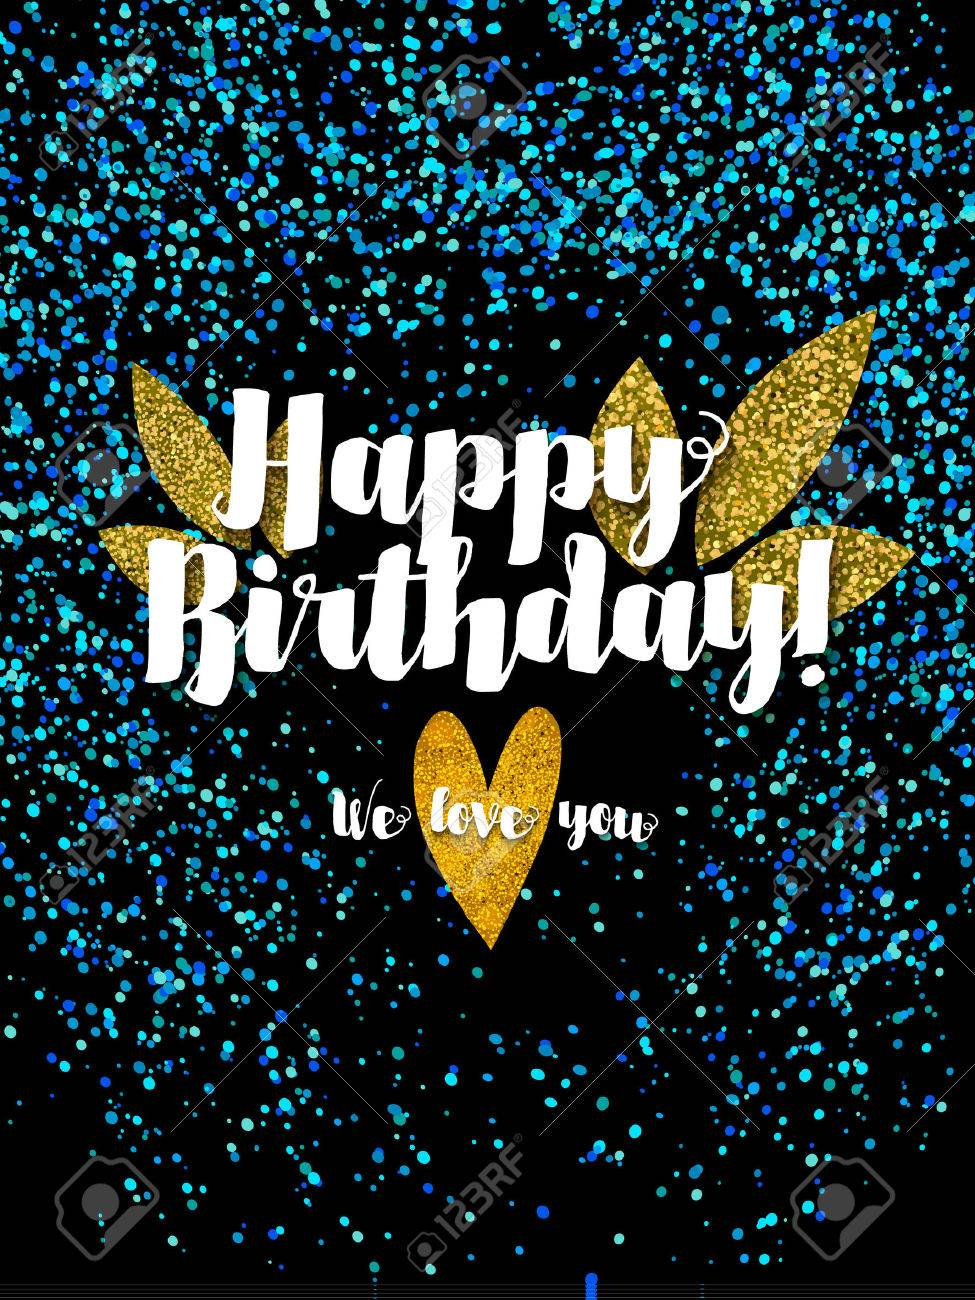 Dark Happy Birthday Card With Scattered Blue Glitter Stock Vector